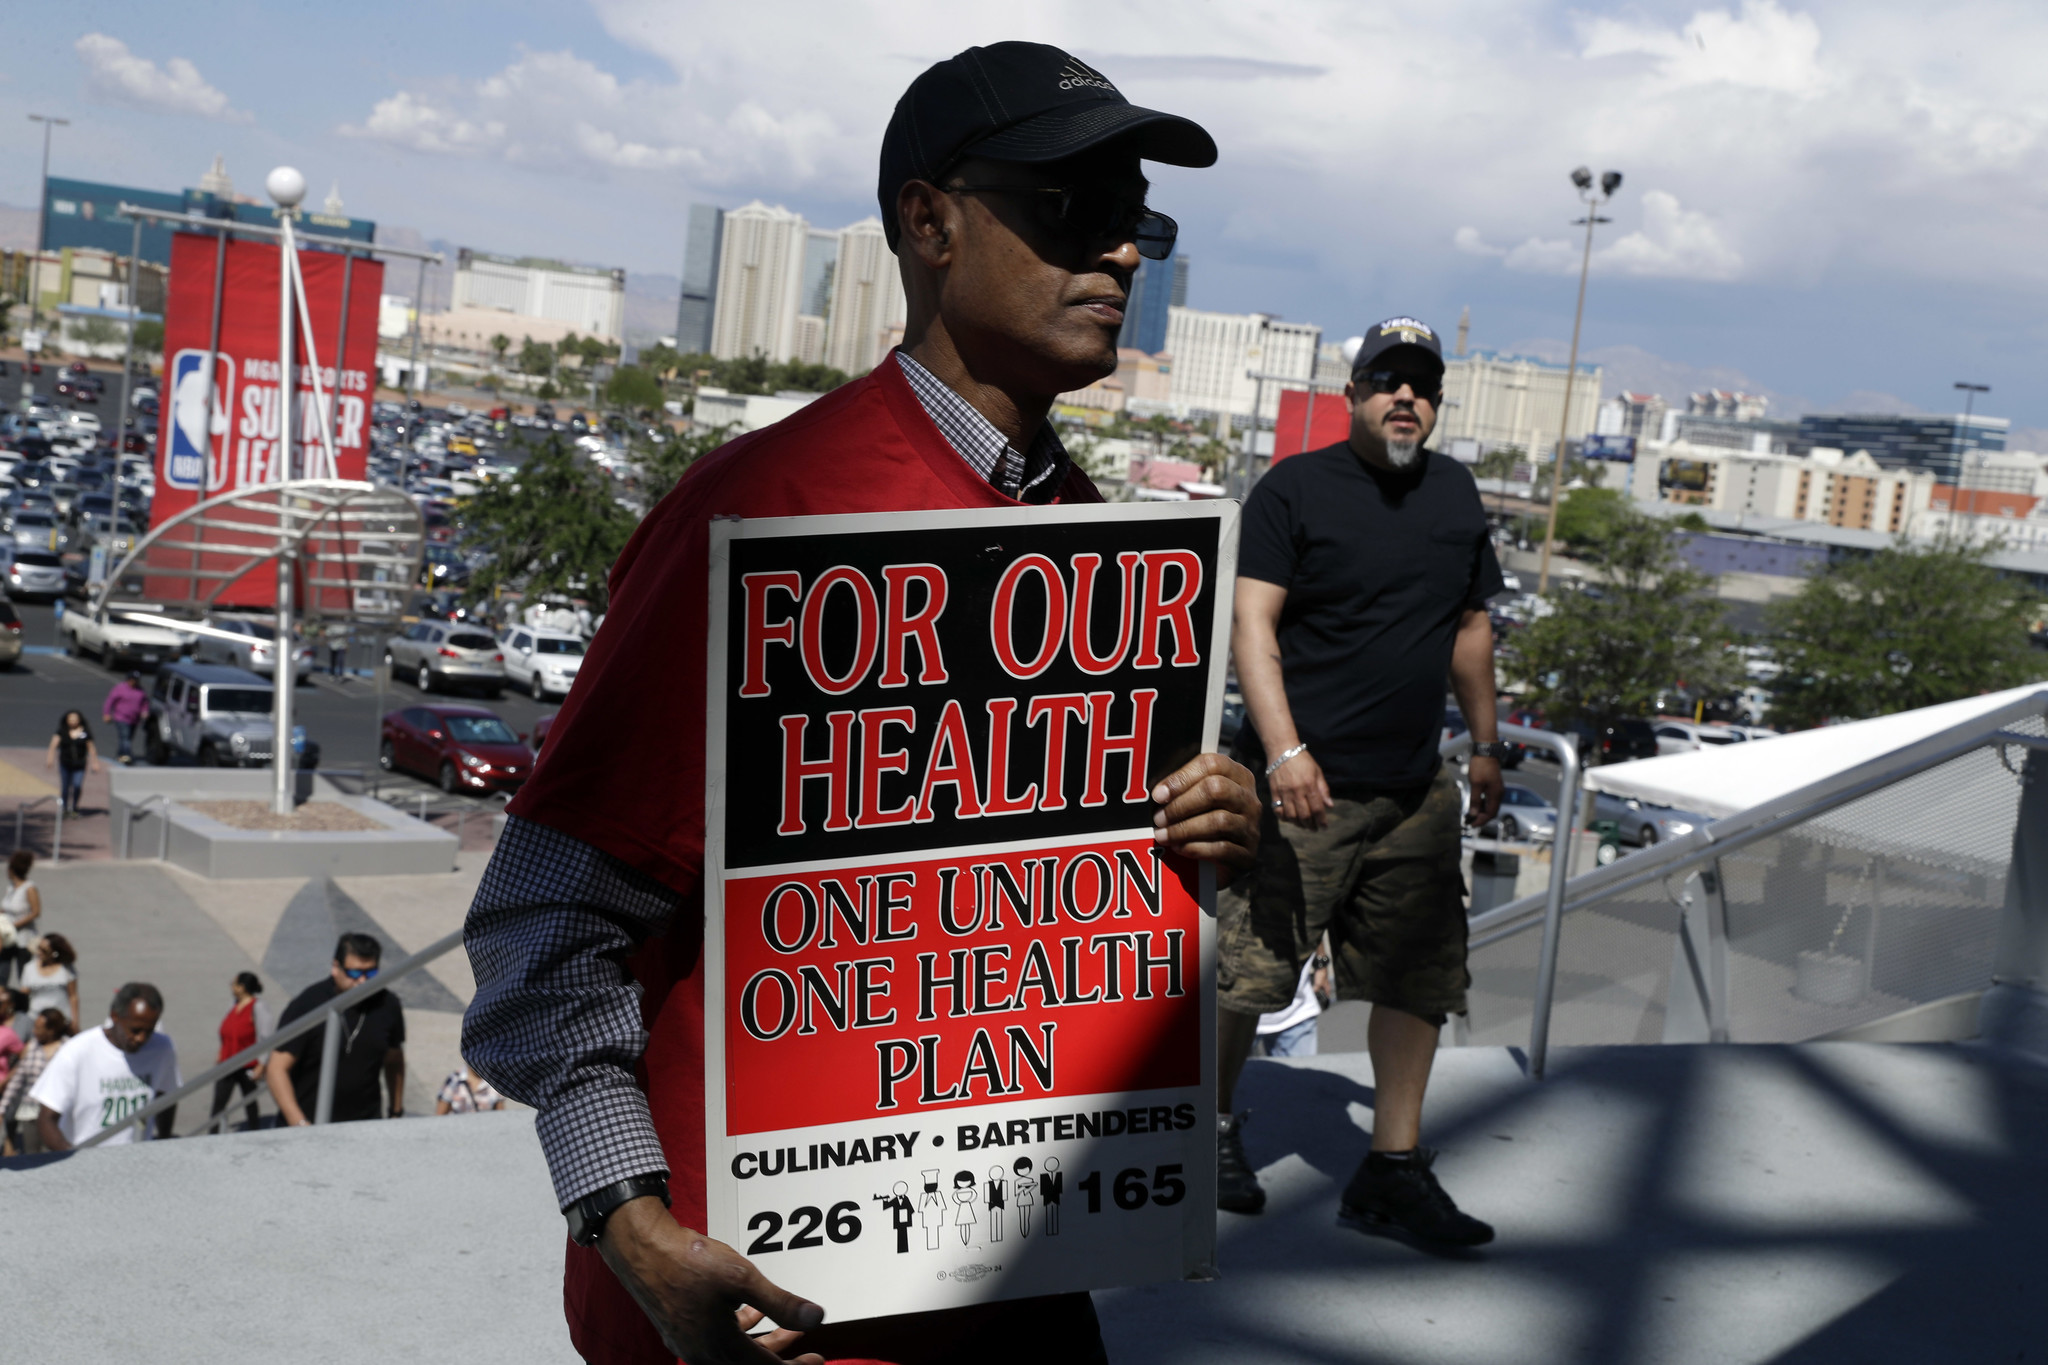 vegas casino workers approve strike that may hobble famed resorts chicago tribune. Black Bedroom Furniture Sets. Home Design Ideas